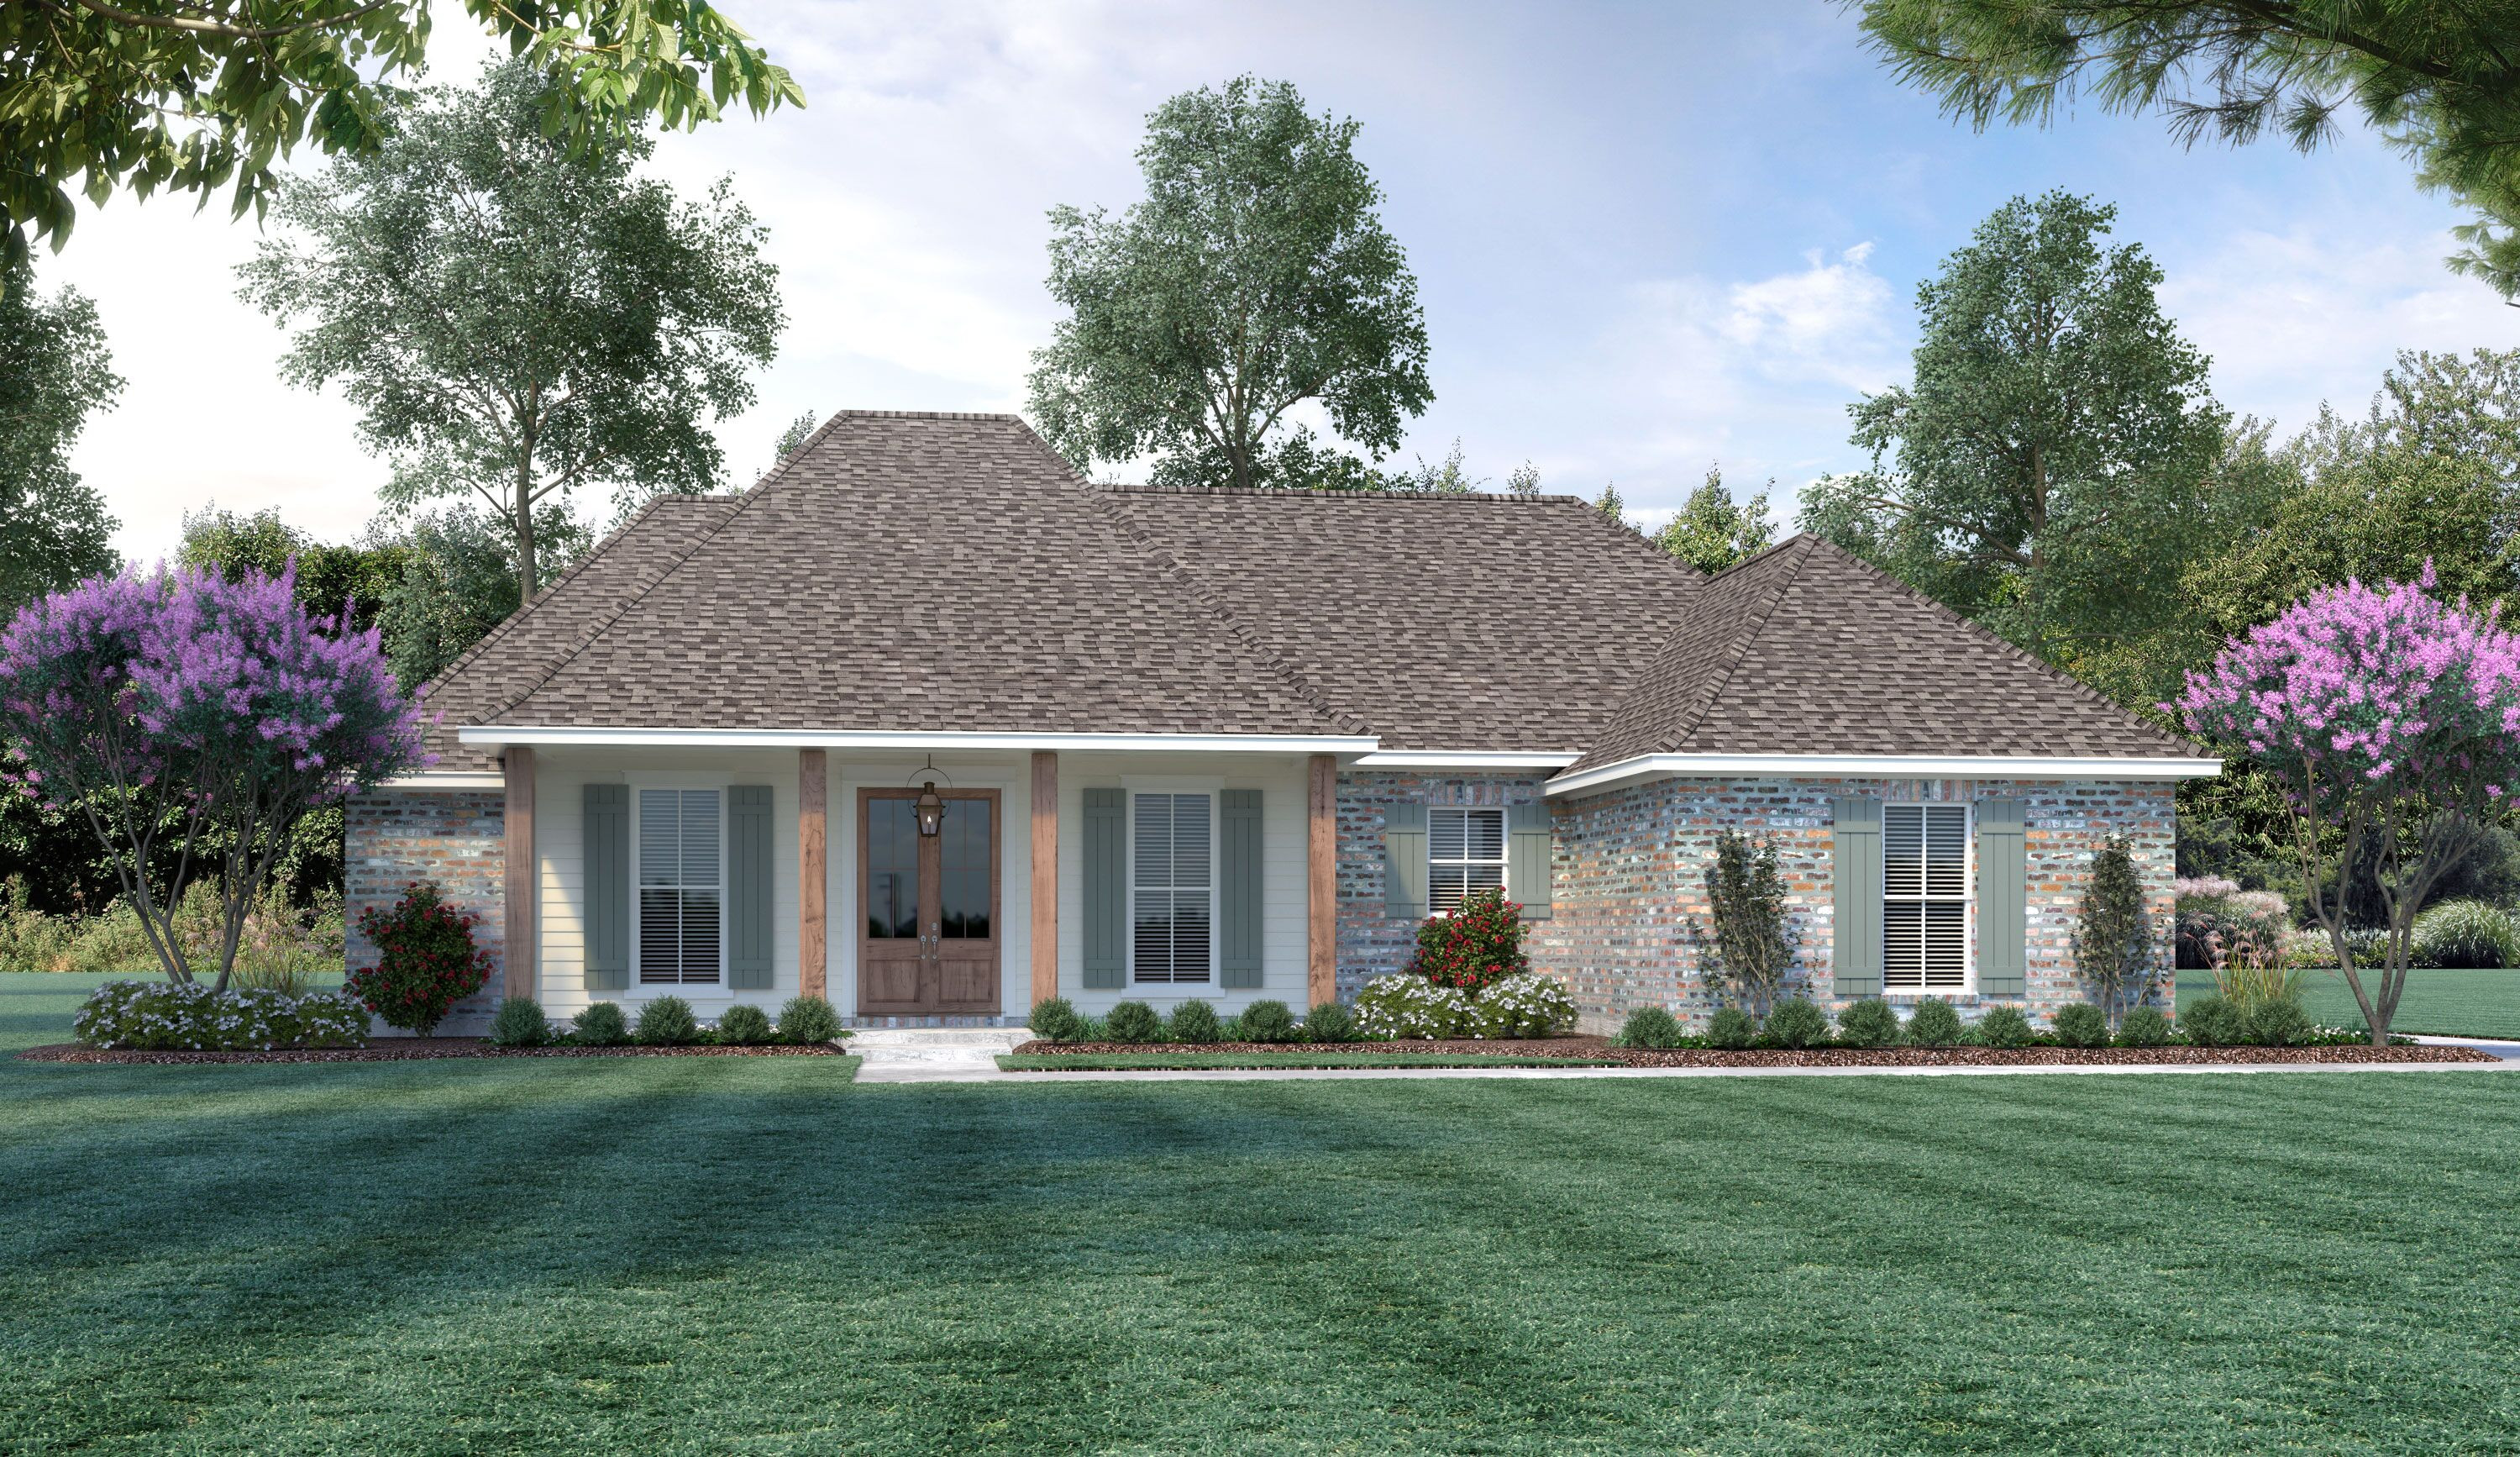 southern living house plans, barn shaped house plans, acadian home plans, acadian style floor plans, french creole house plans, kabel house plans, french cajun house plans, contemporary house plans, 9 bedroom house plans, southern style house plans, new orleans style house plans, small colonial house plans, plantation house plans, authentic victorian house plans, quaint cottage house plans, english house plans, country southern house plans, cool small house plans, bungalow style house plans, bungalow cottage house plans, on french acadian house plans carport